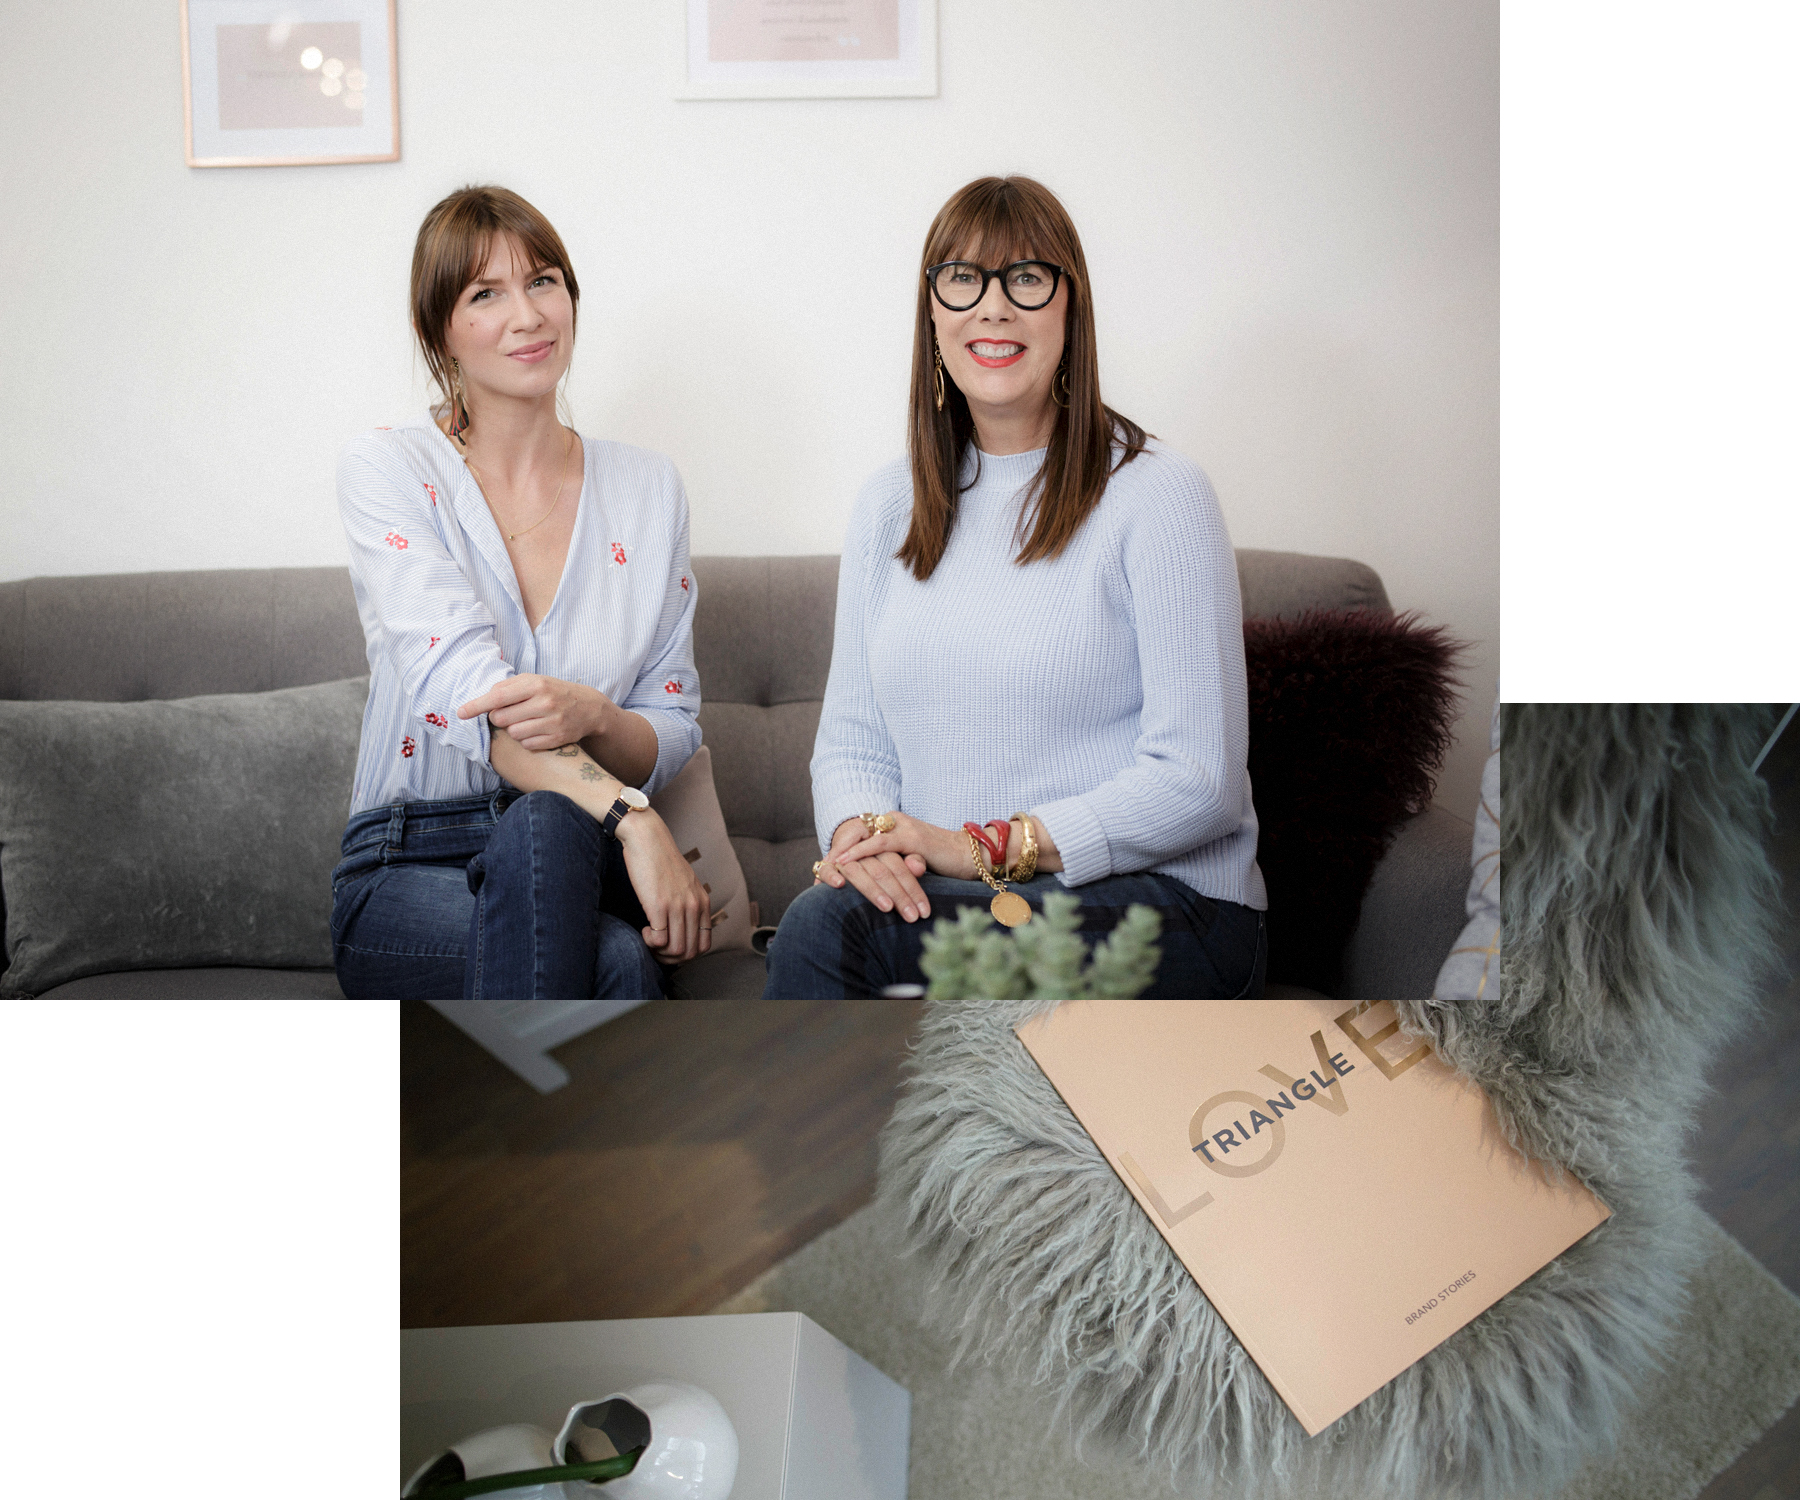 triangle interview business for fashion girls talk fashionblogger rosegold grey minimal scandi style interior brunette bangs cute denim style baby blue cats & dogs modeblog  düsseldorf germany styleblogger outfitblogger ricarda schernus max bechmann 7